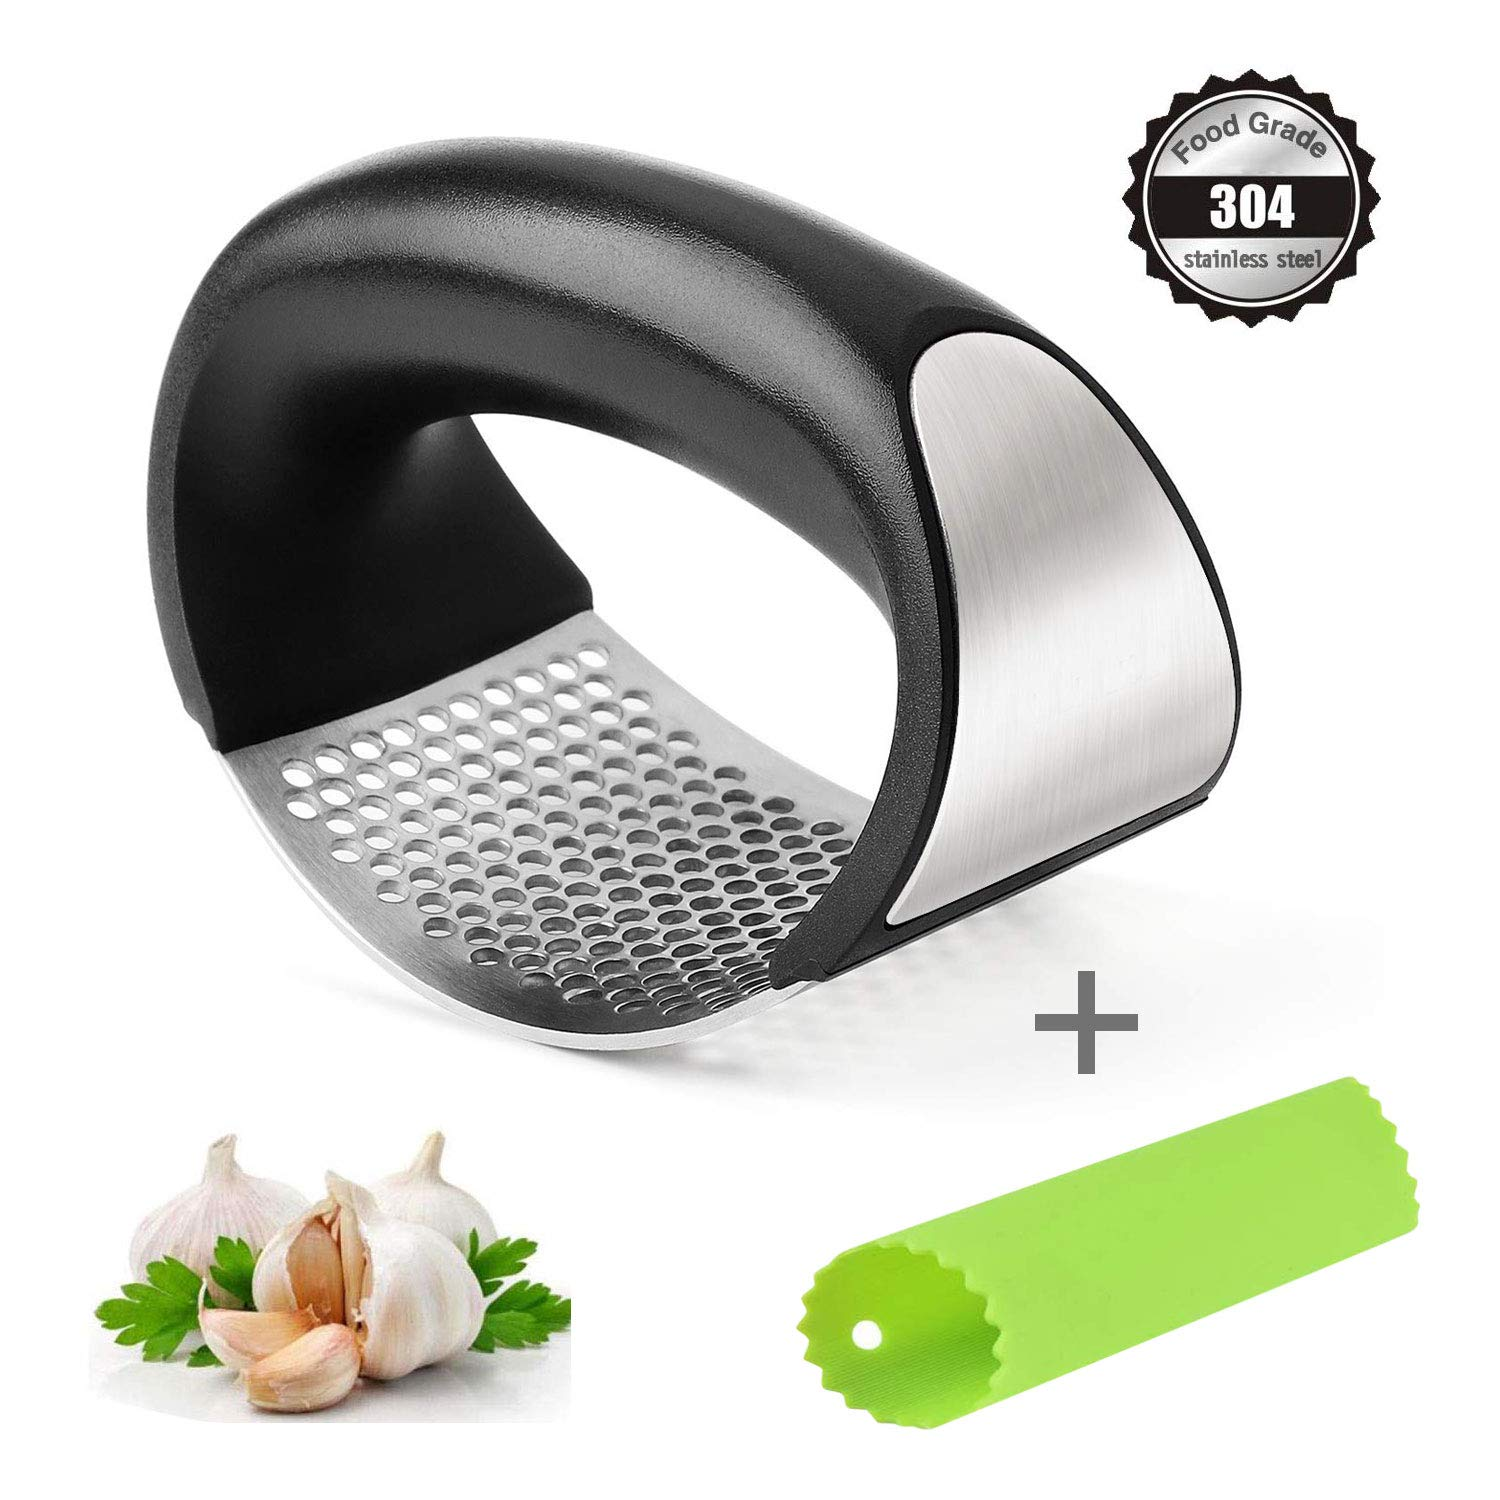 Vicious Teknology Garlic Press Rocker Stainless Steel Ginger Crusher Squeezer and Peeler Kitchen Tool Set, Professional Food Prep Grade,Rust Proof,Dishwasher Safe, Easy, 1Pack, Black by Vicious Teknology